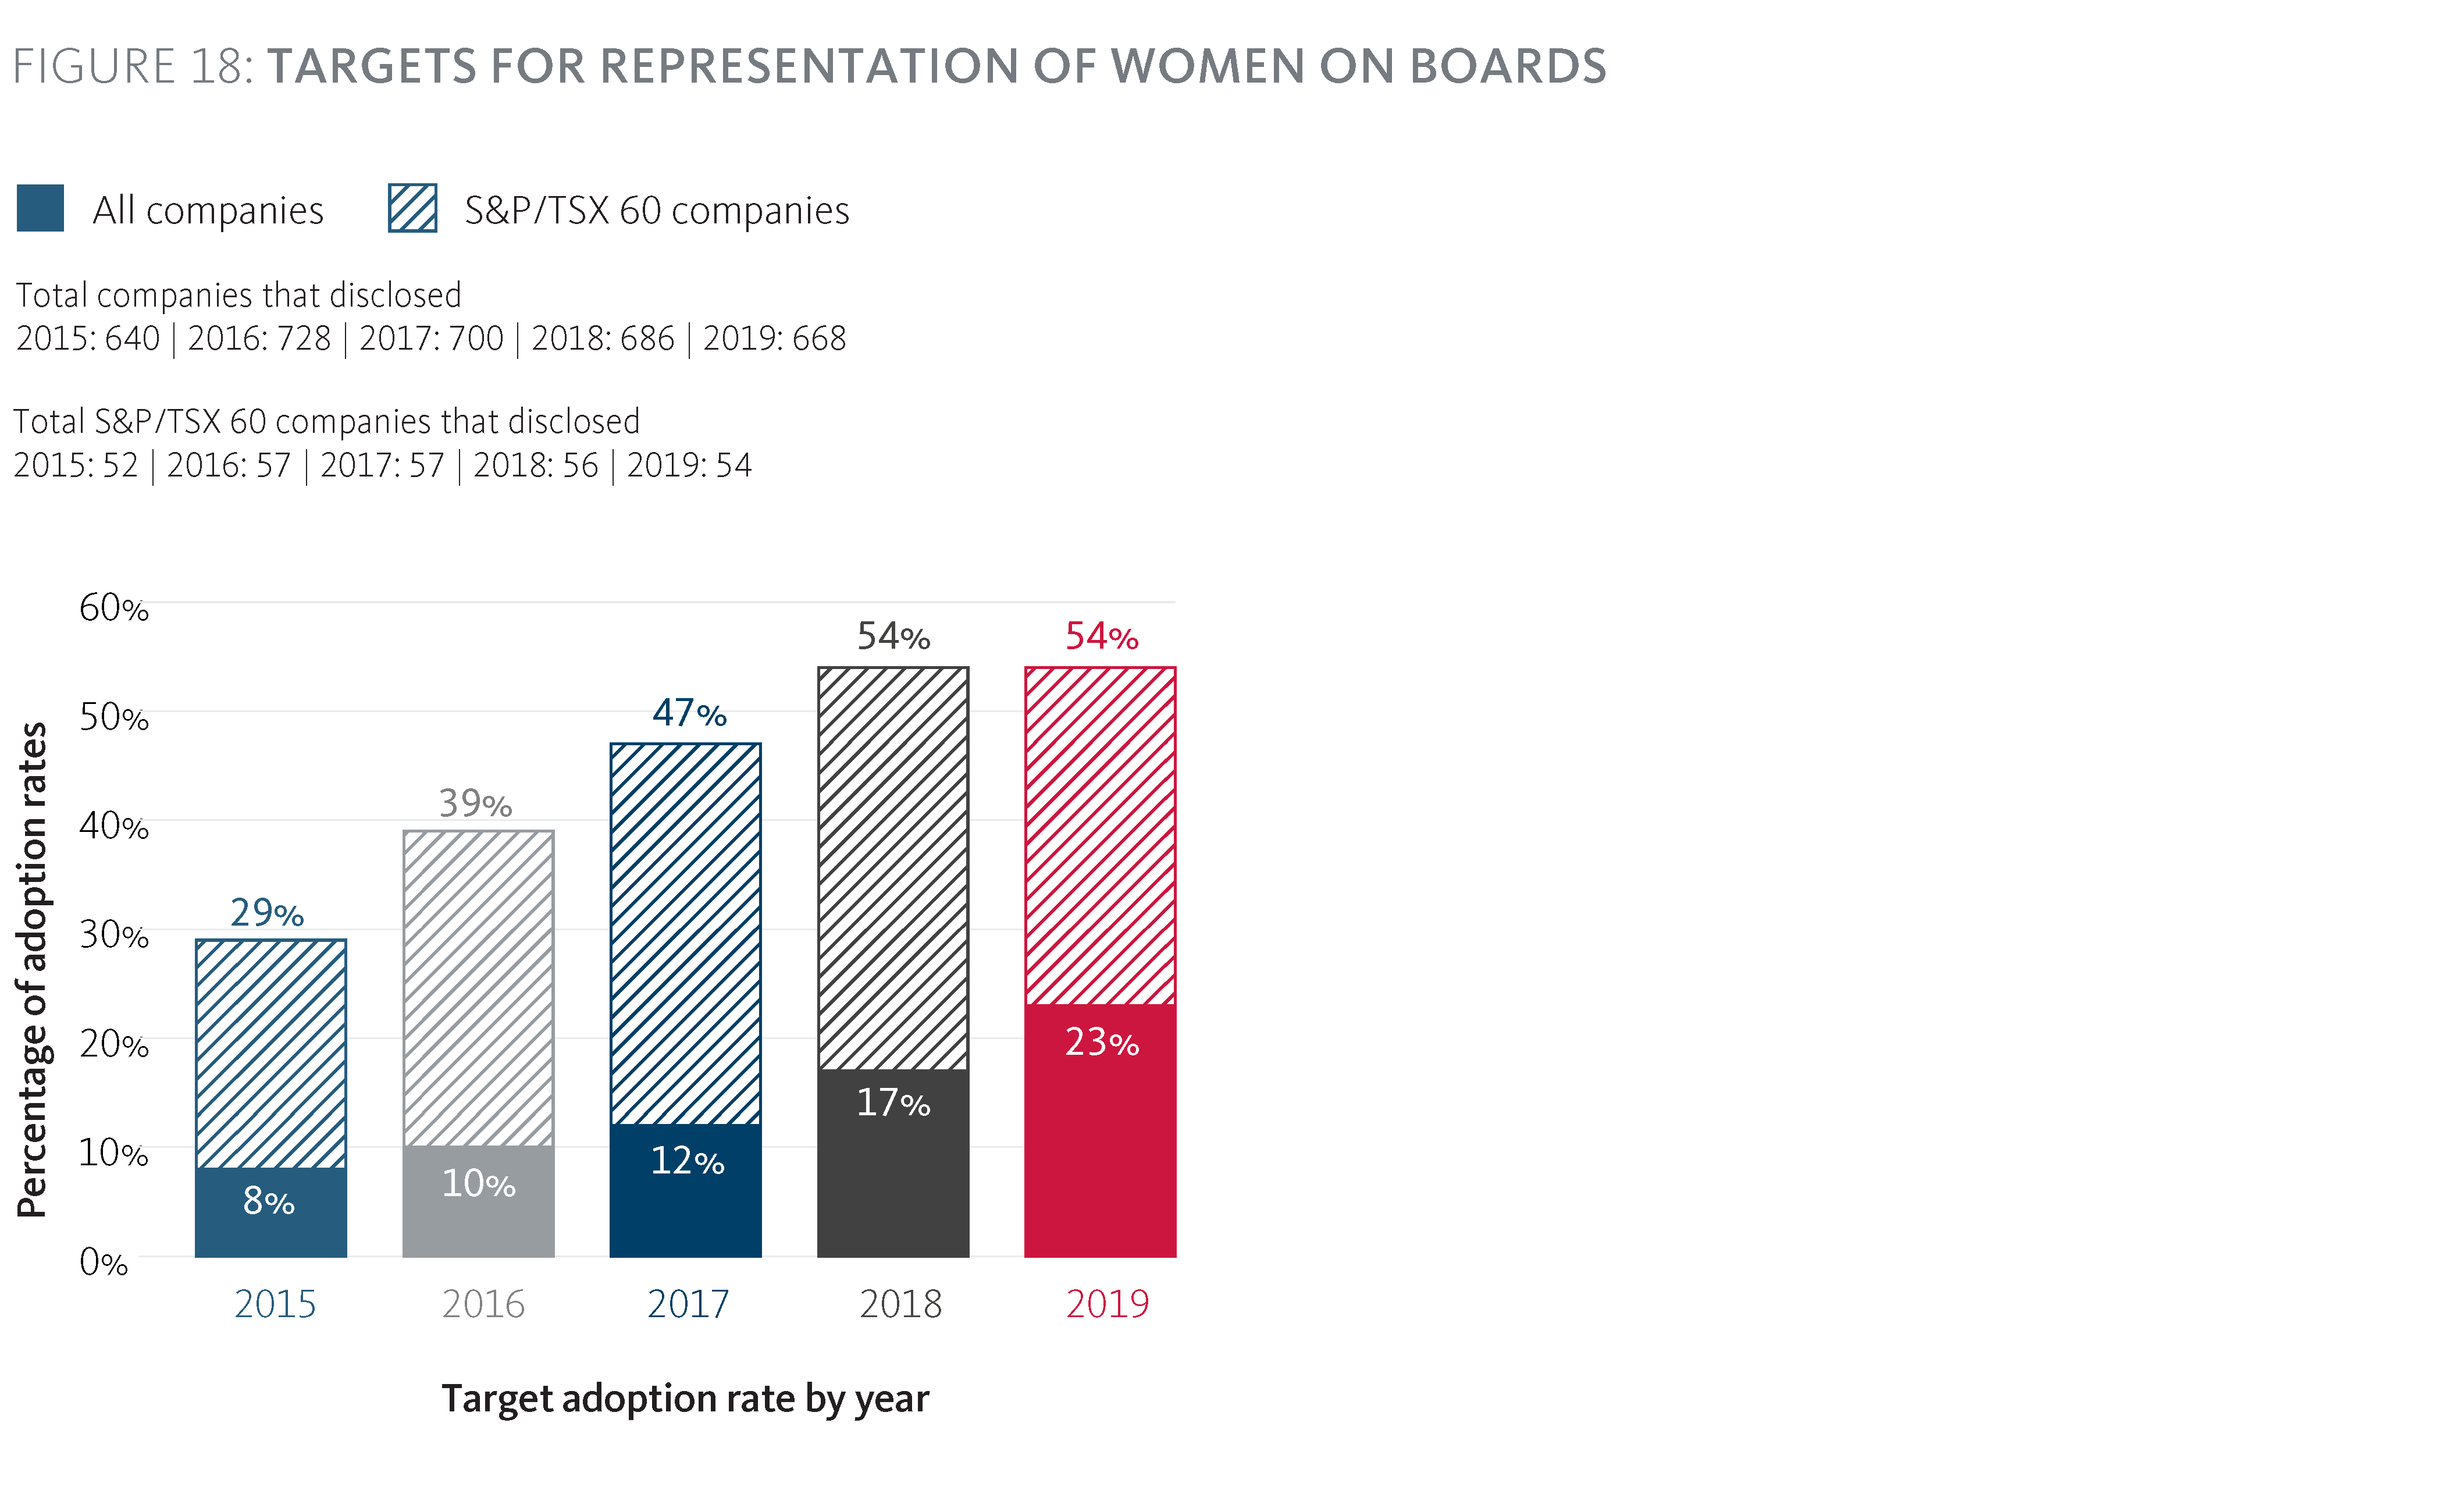 Targets for representation of women on Boards